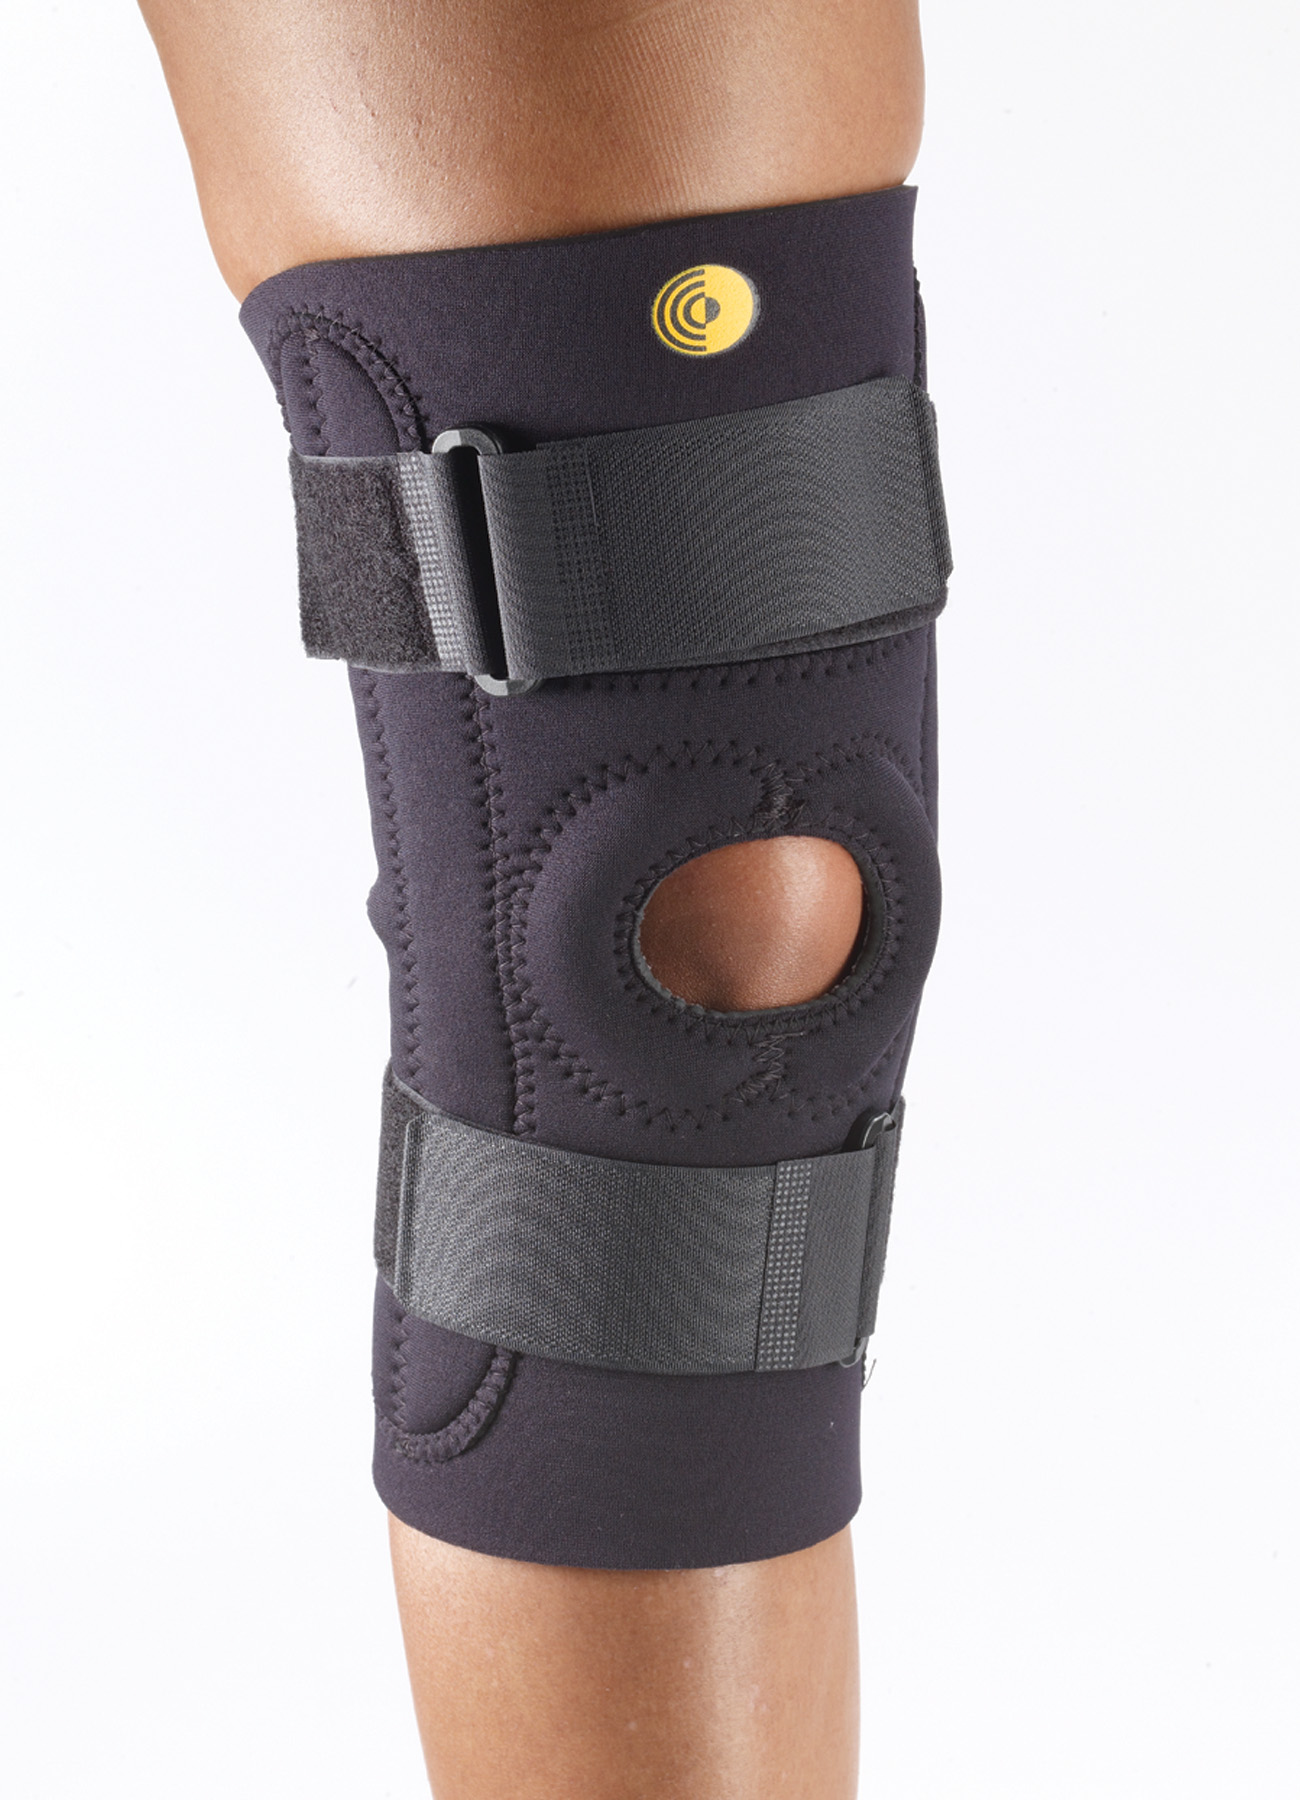 Medial-Lateral Patella Stabilizer